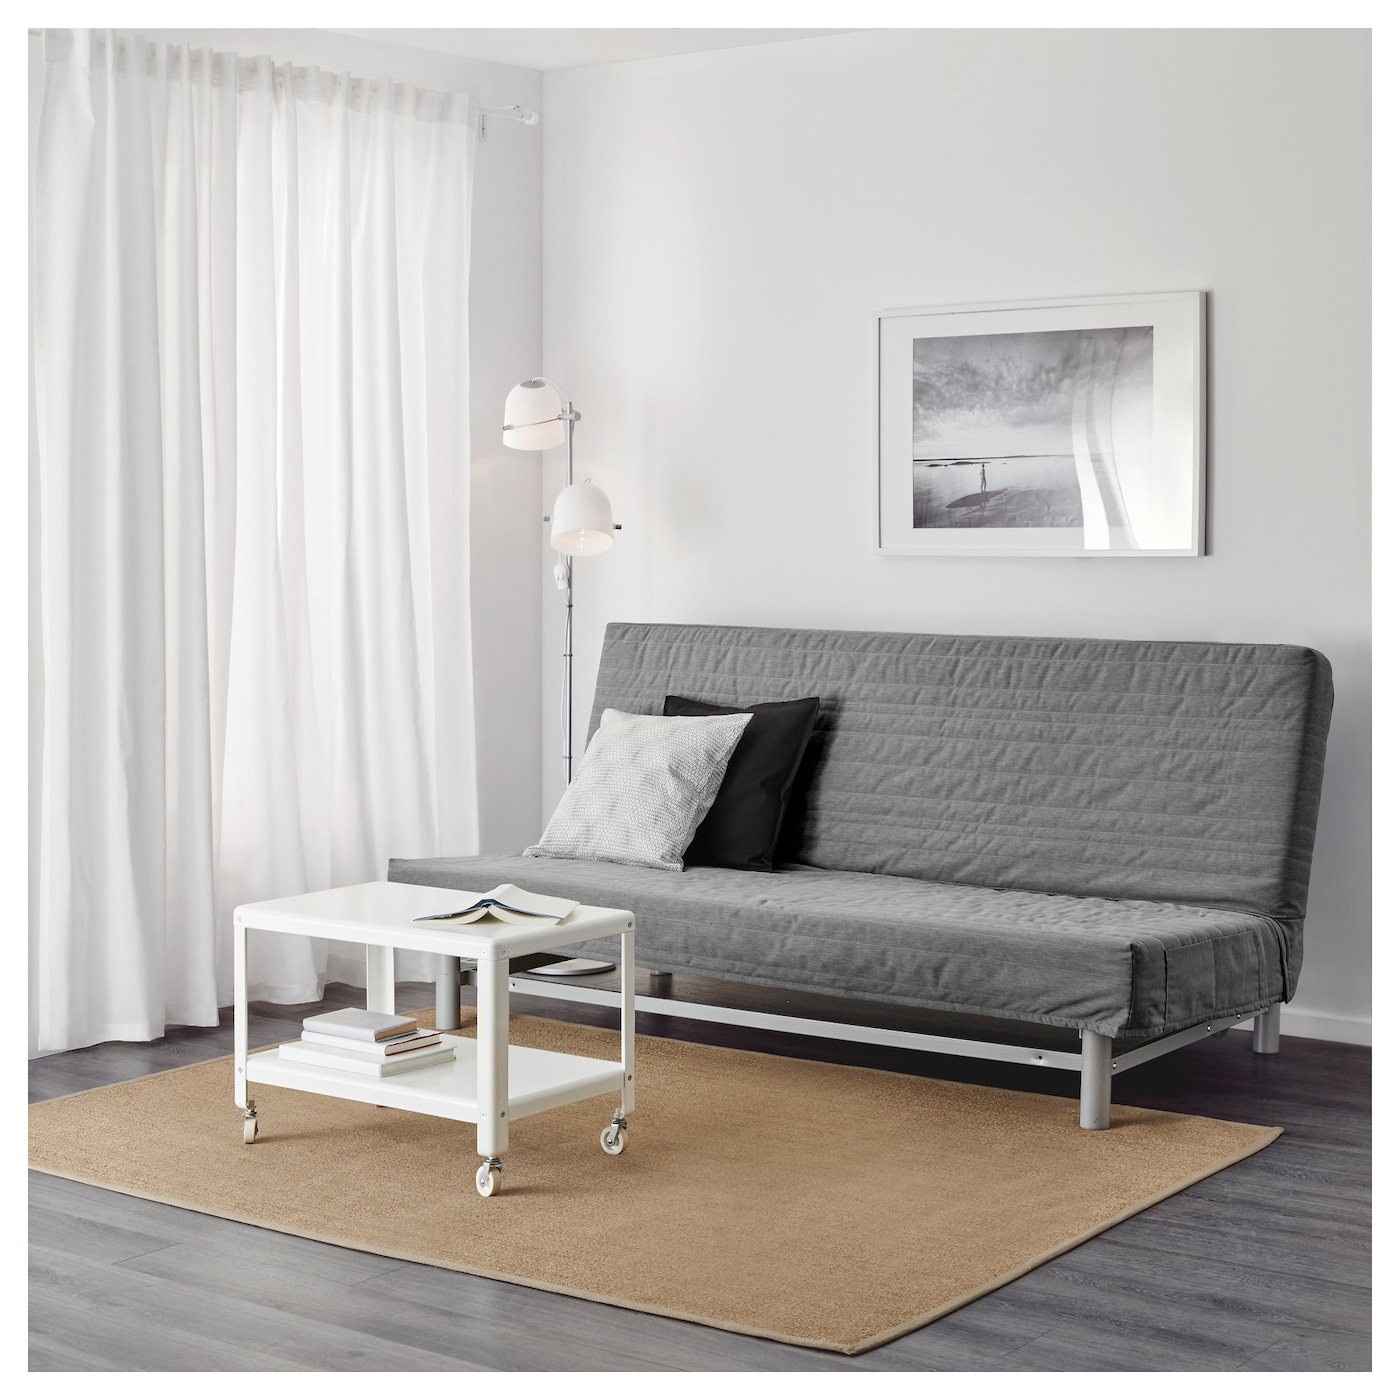 Ikea Pull Out Couch Bed Futon Beds With Mattress Included Futon